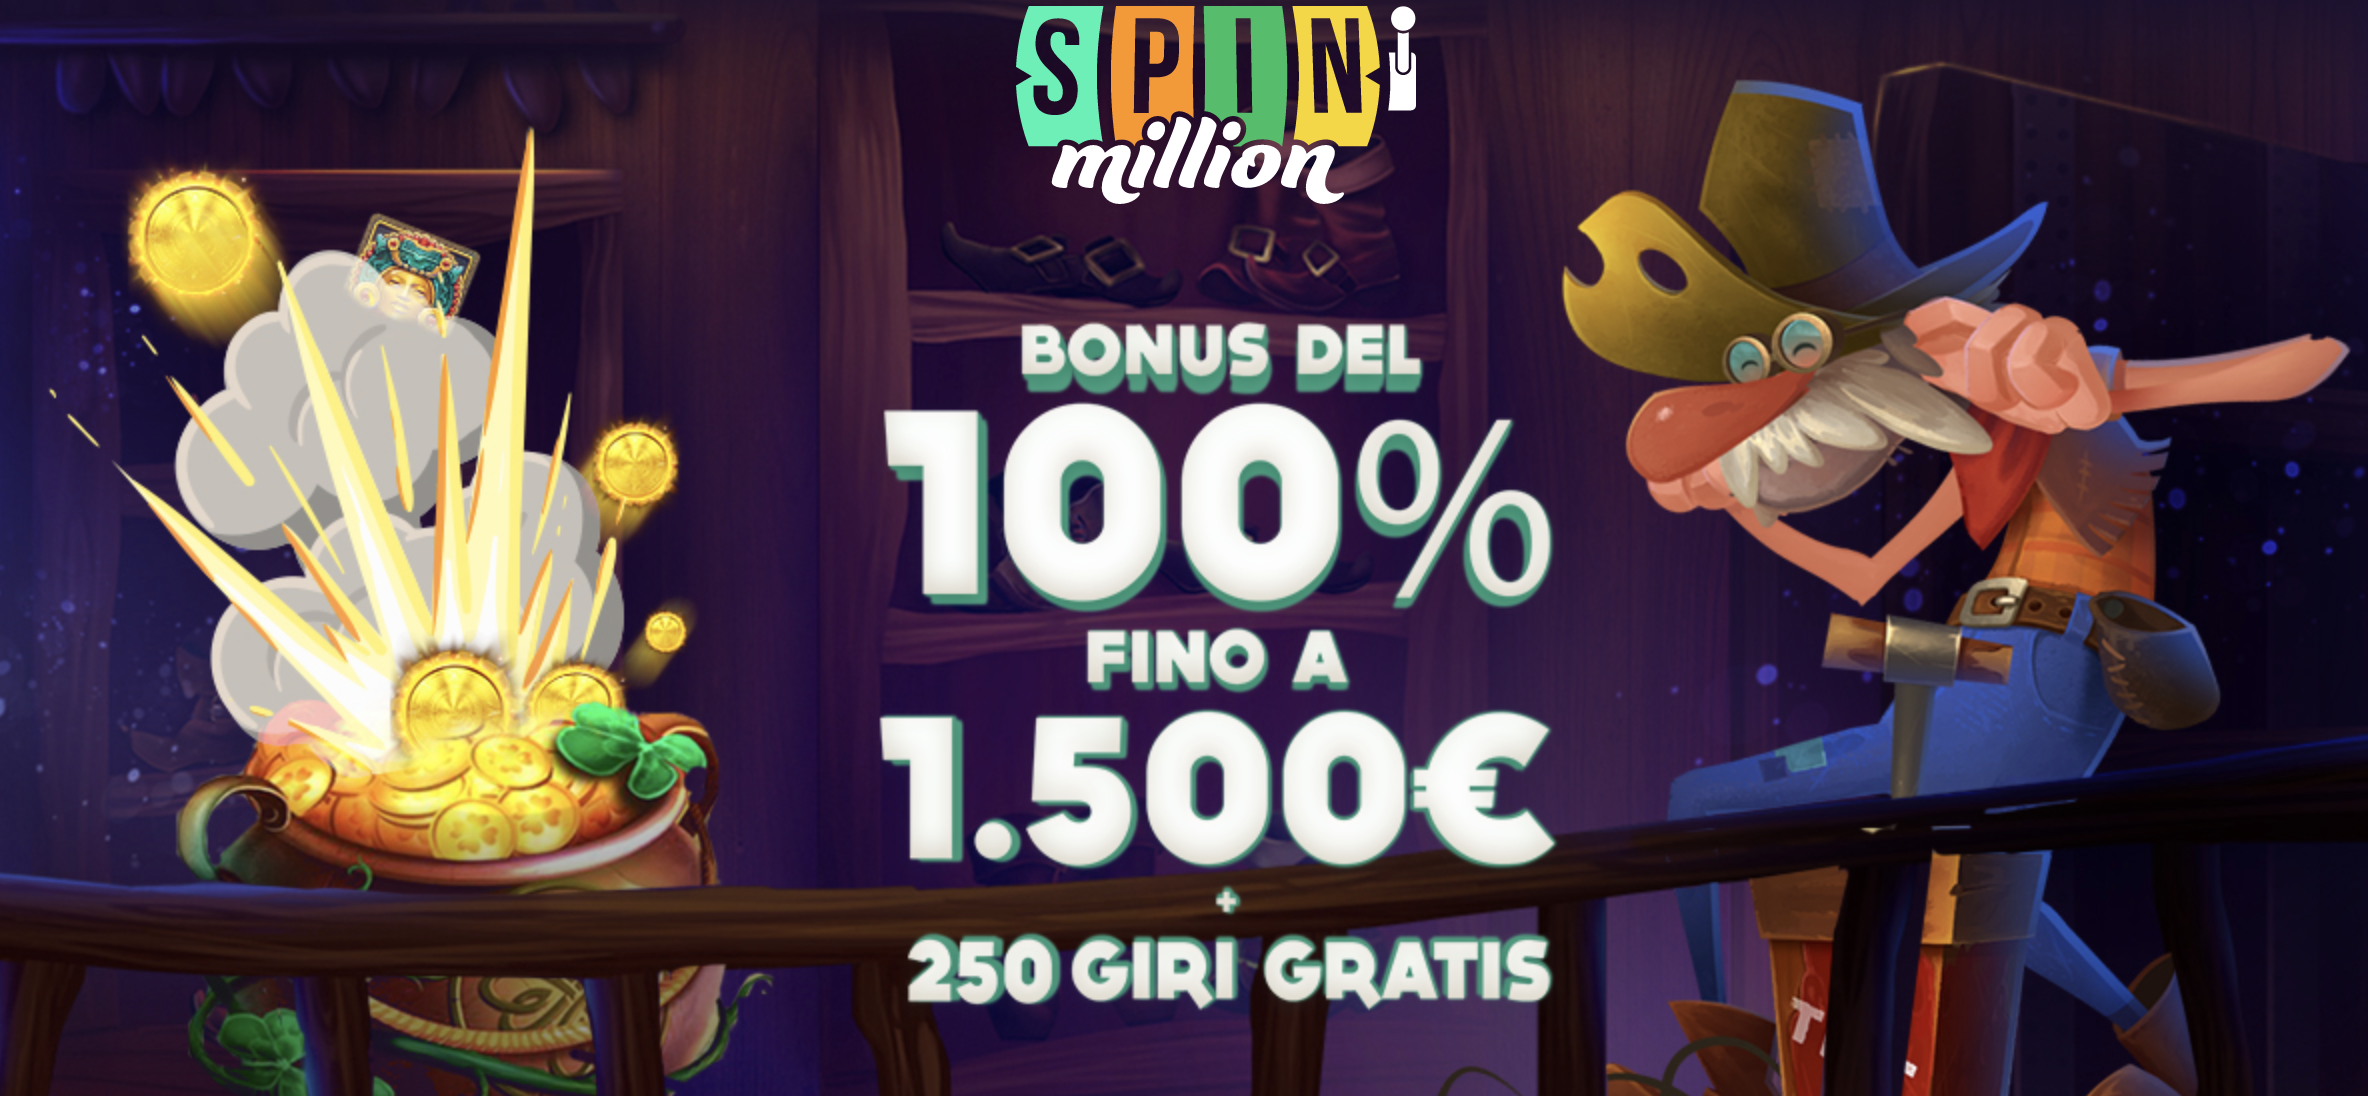 spin million casino bonus-benvenuto